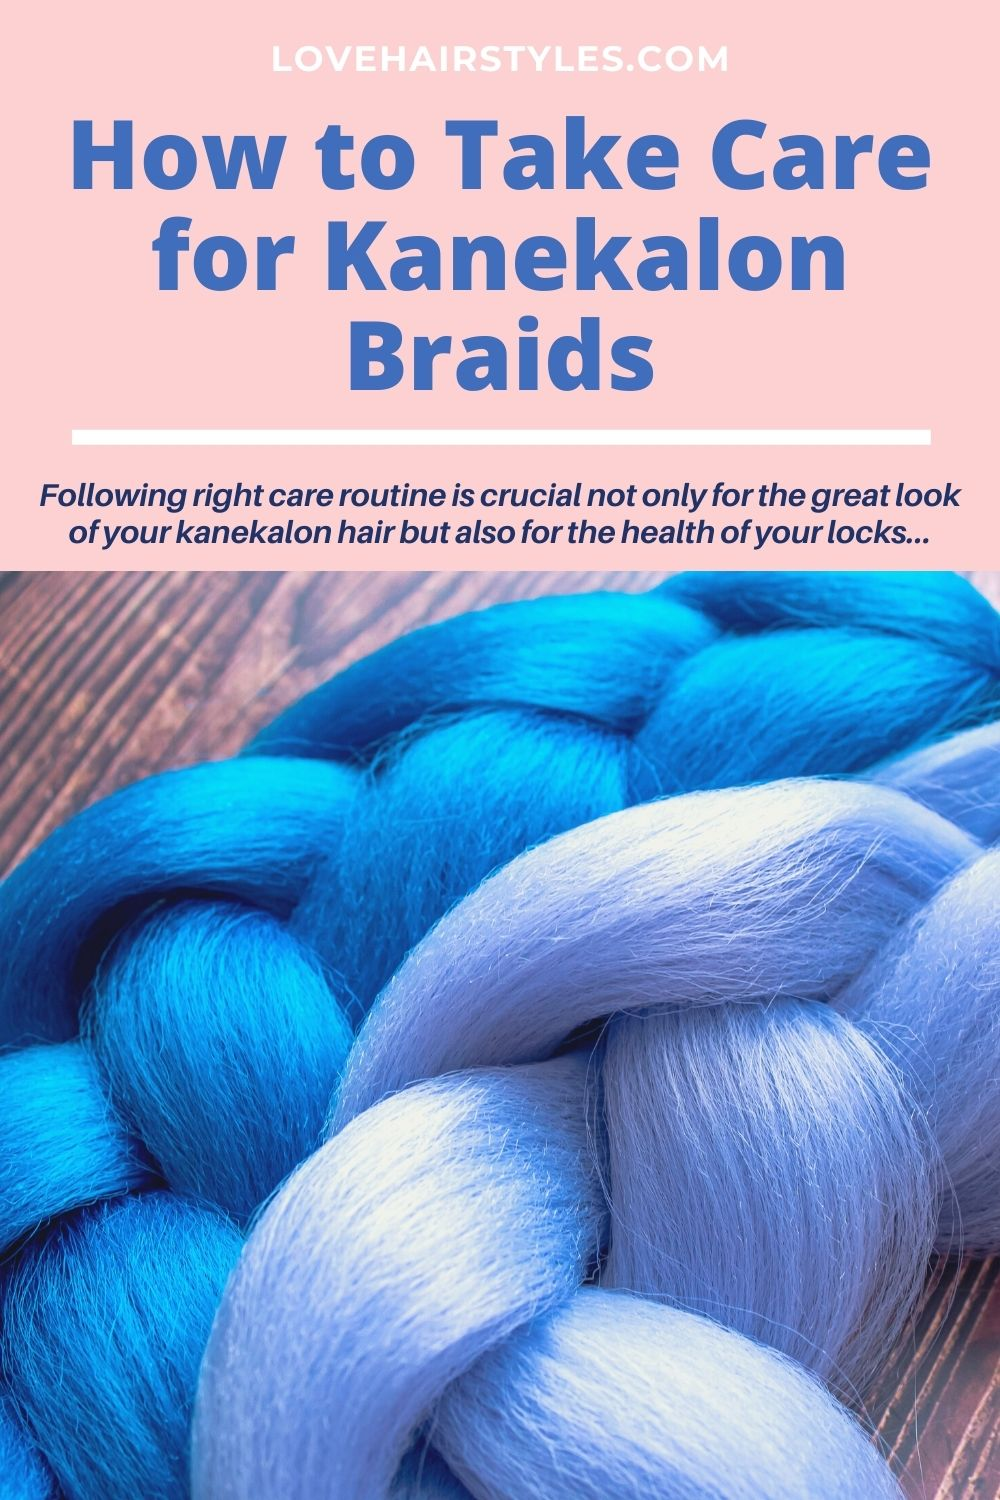 How to Take Care for Kanekalon Braids